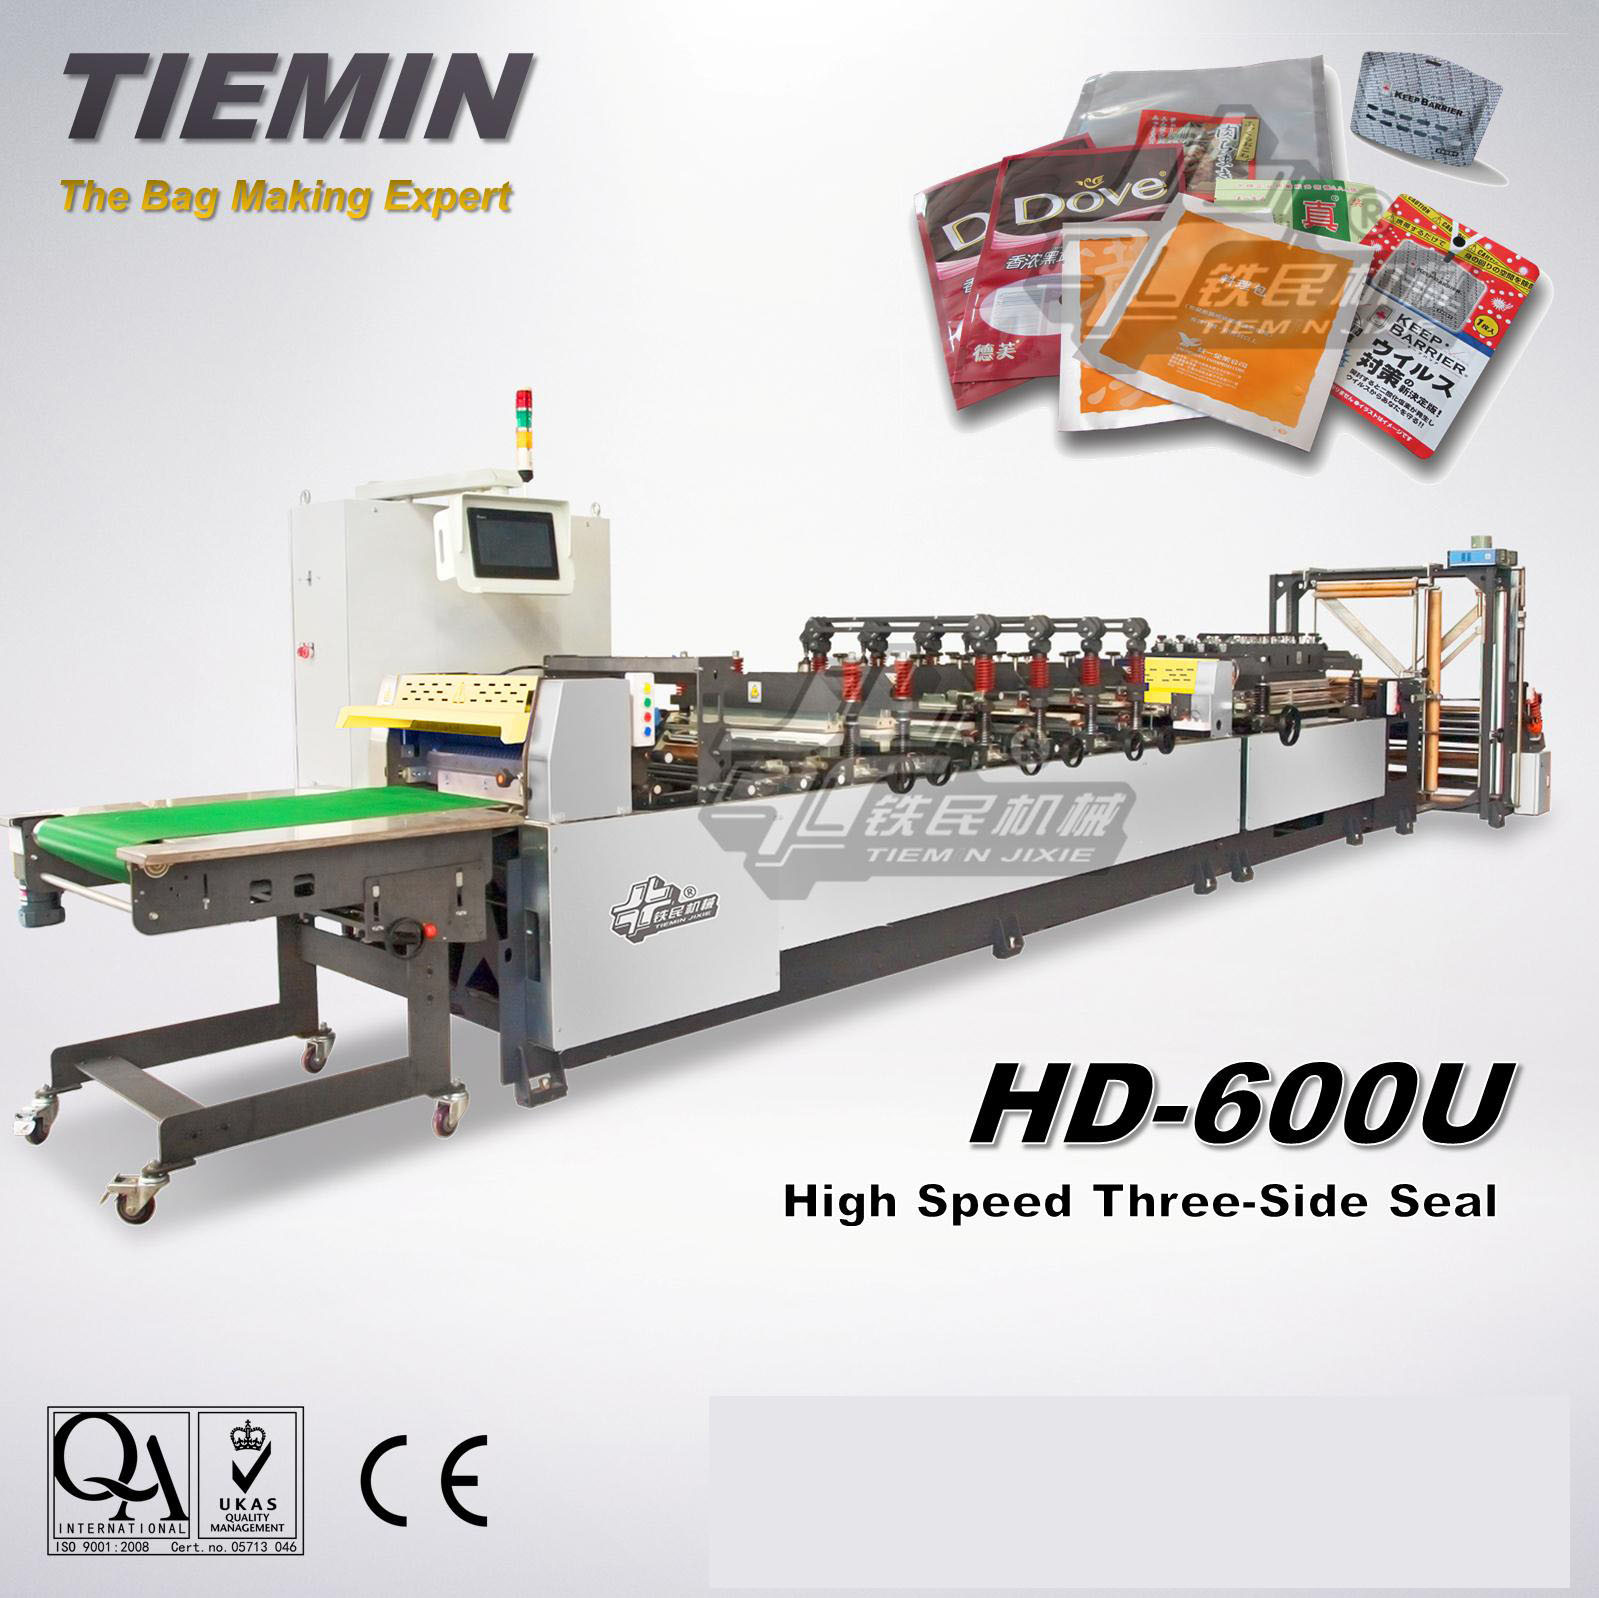 Tiemin Automatic High Speed Three Side Seal Bag & Pouch Making Machine HD-600u (Standard model)